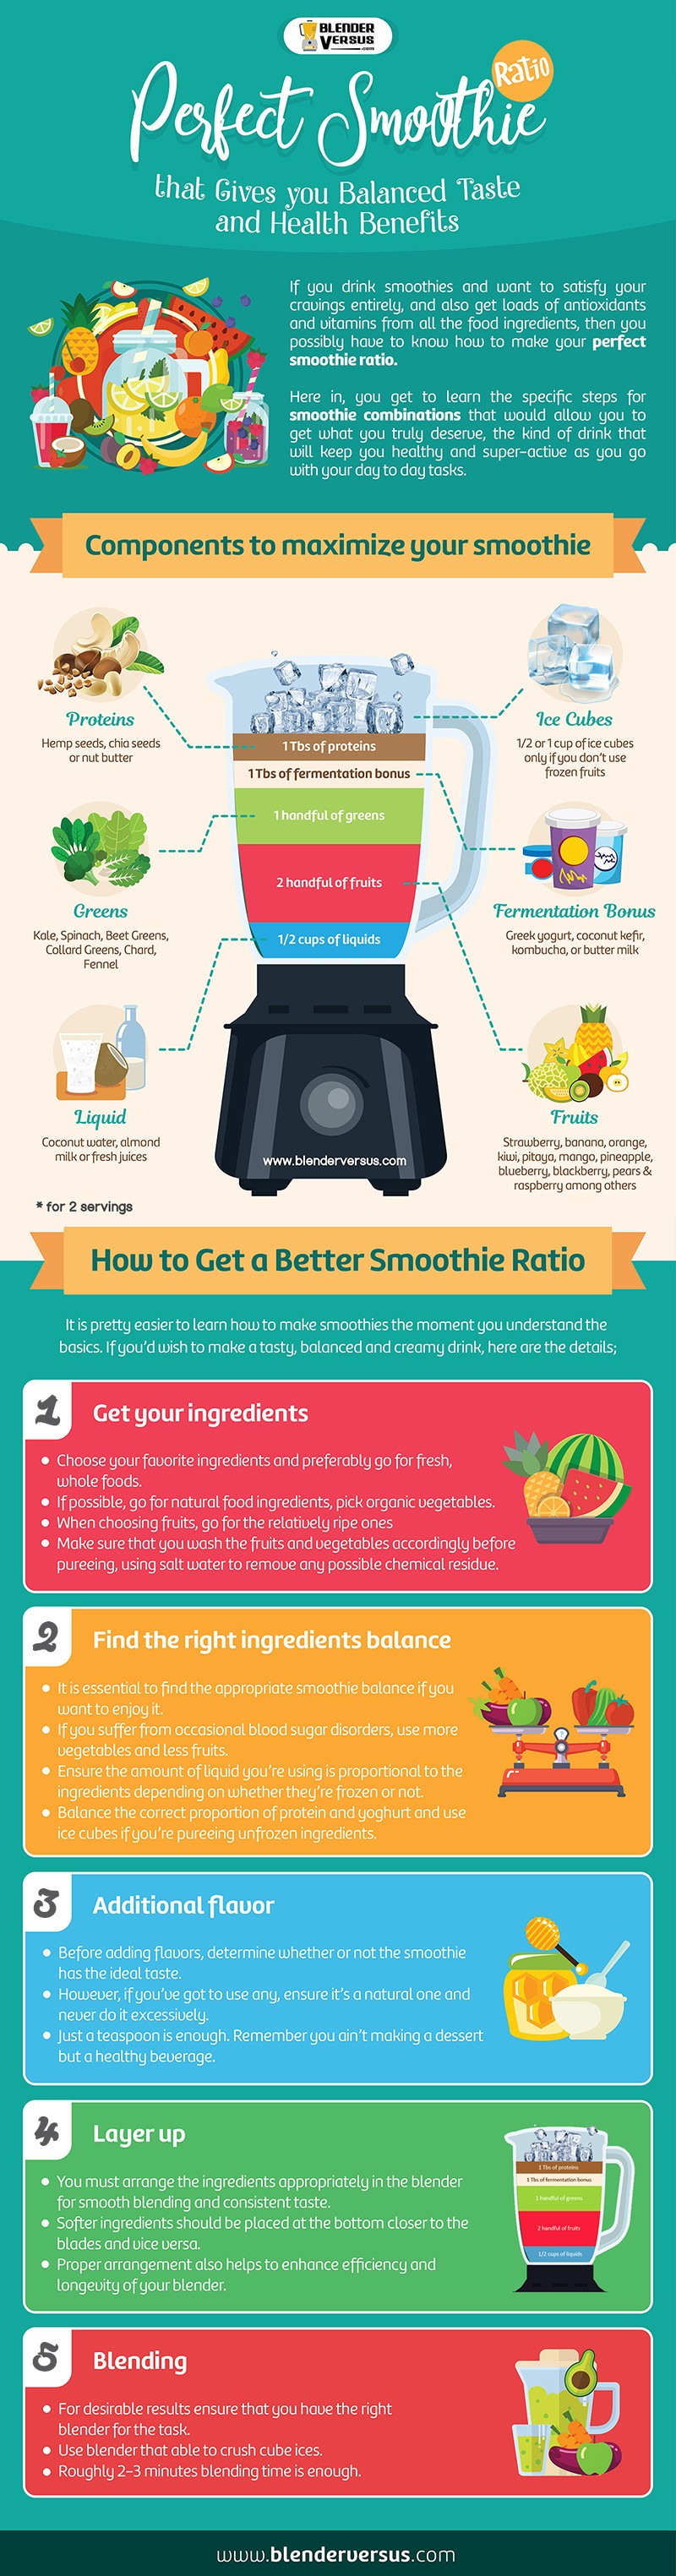 infographic perfect smoothie ratio by BlenderVersus.com